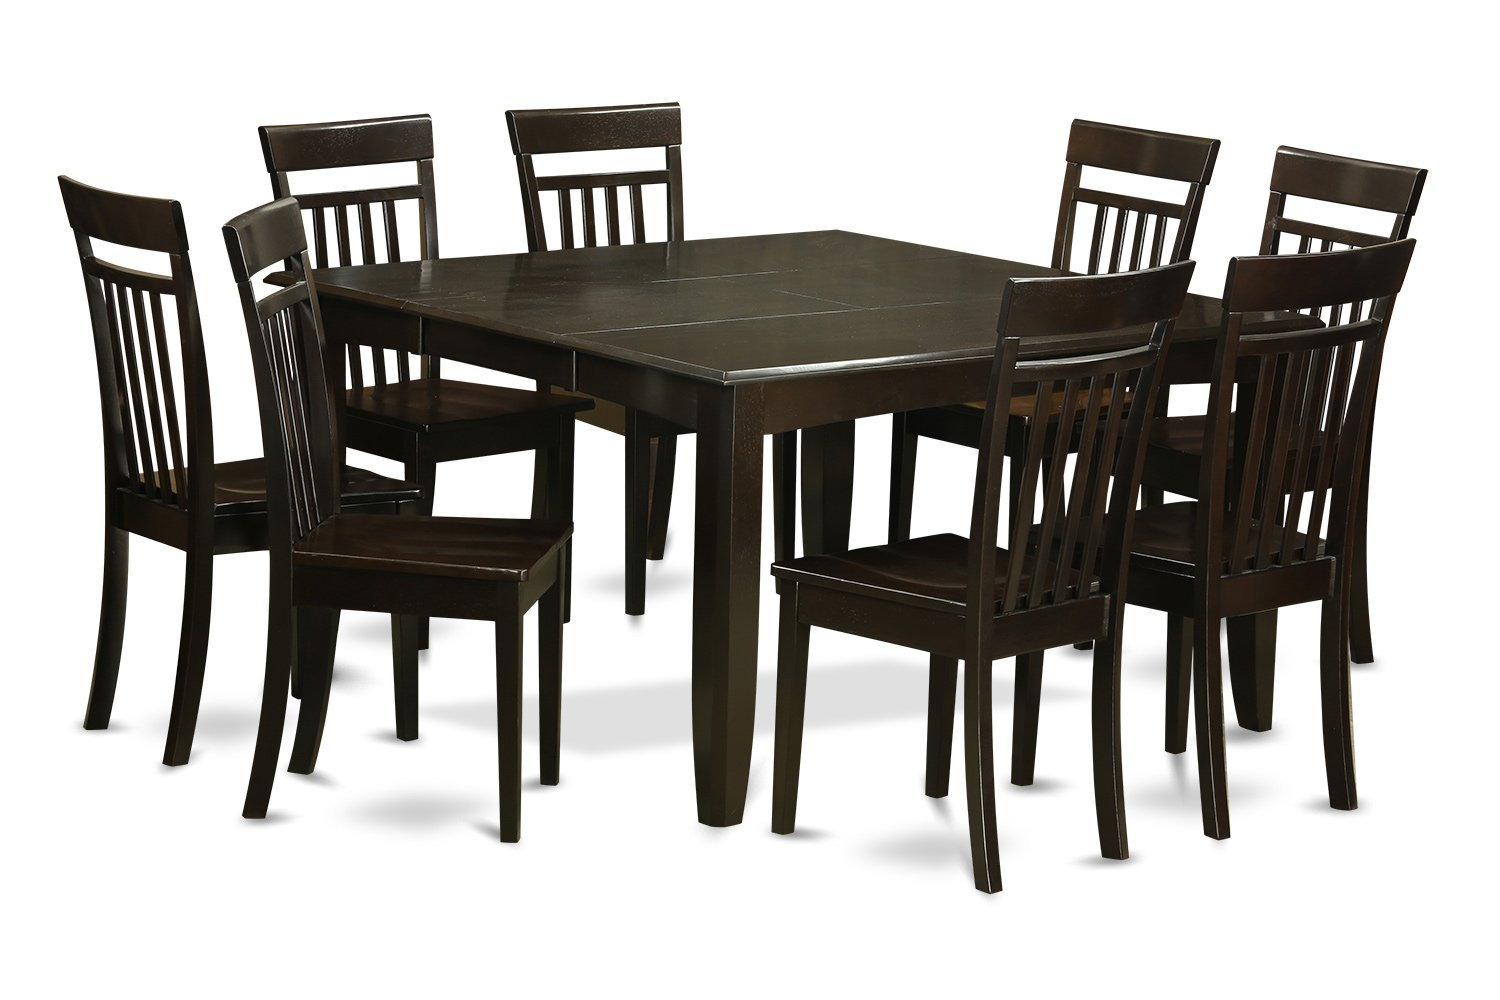 East West Furniture PFCA9-CAP-W 9 Pc Dining Room Set Dinette Table with Leaf and 8 Dinette Chairs.